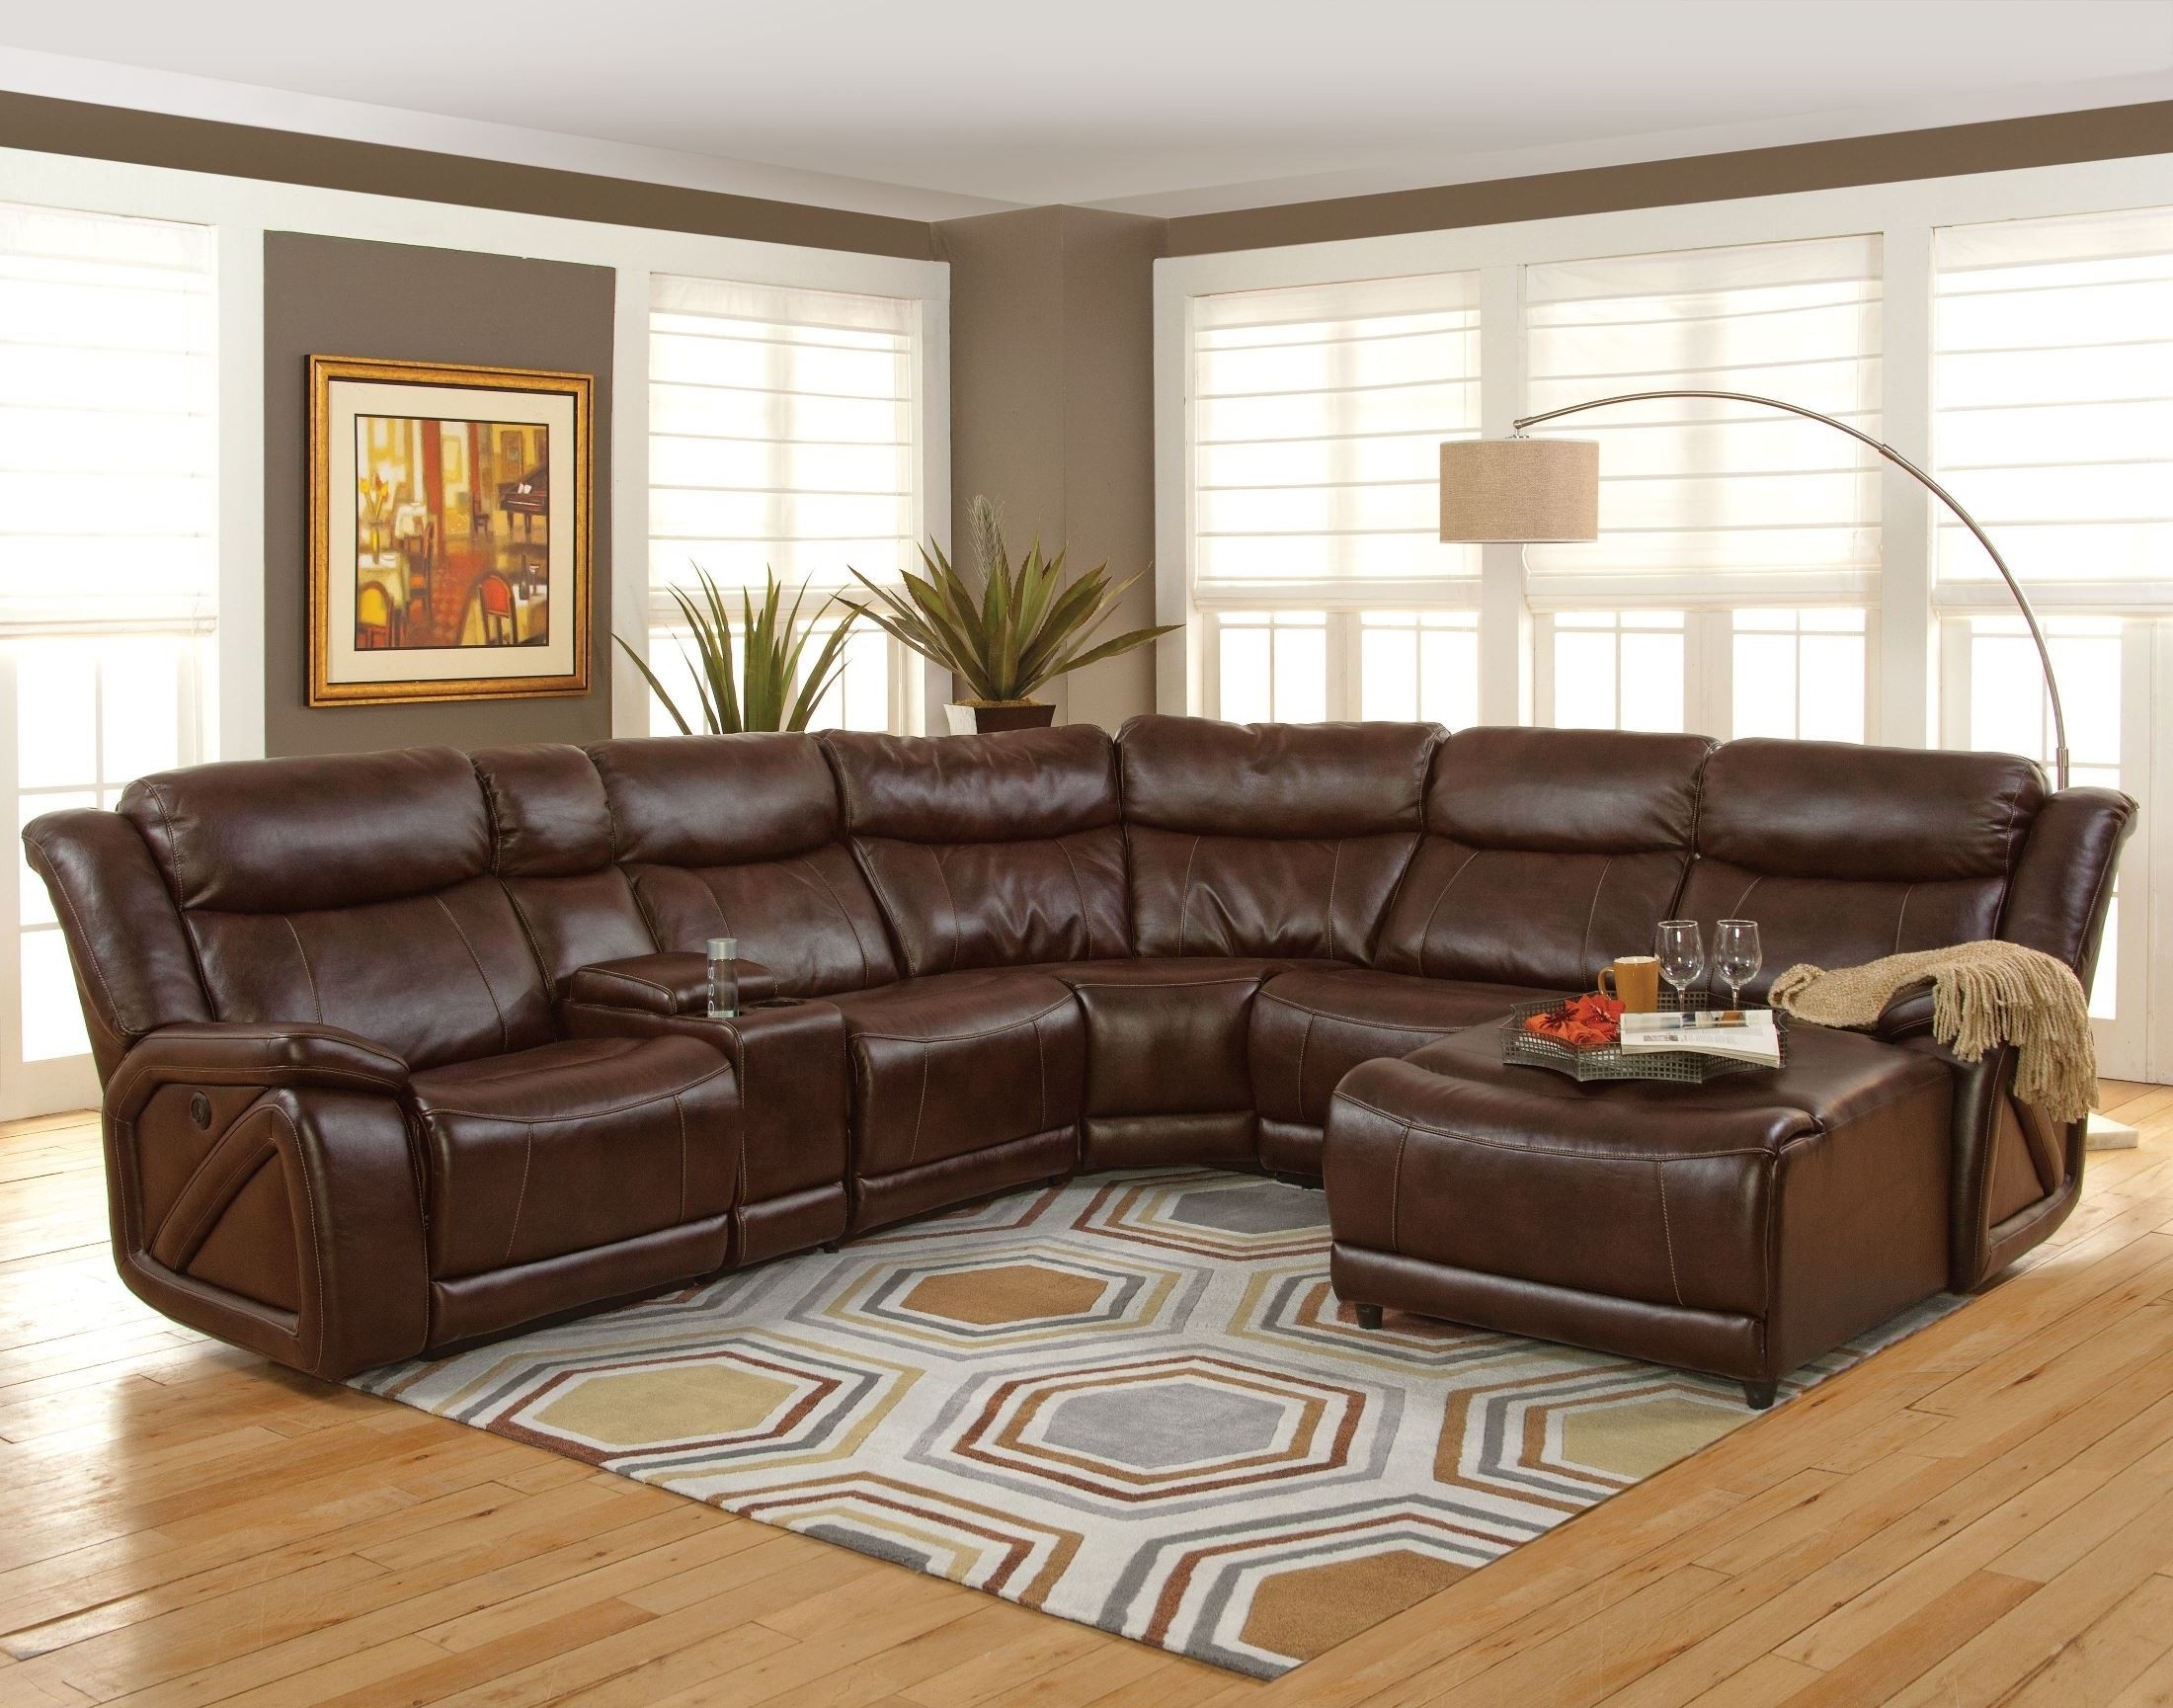 Turdur 3 Piece Sectionals With Laf Loveseat For Widely Used Park Place Premier Brown Laf Sectional From New Classics (20 225 17L (View 16 of 20)